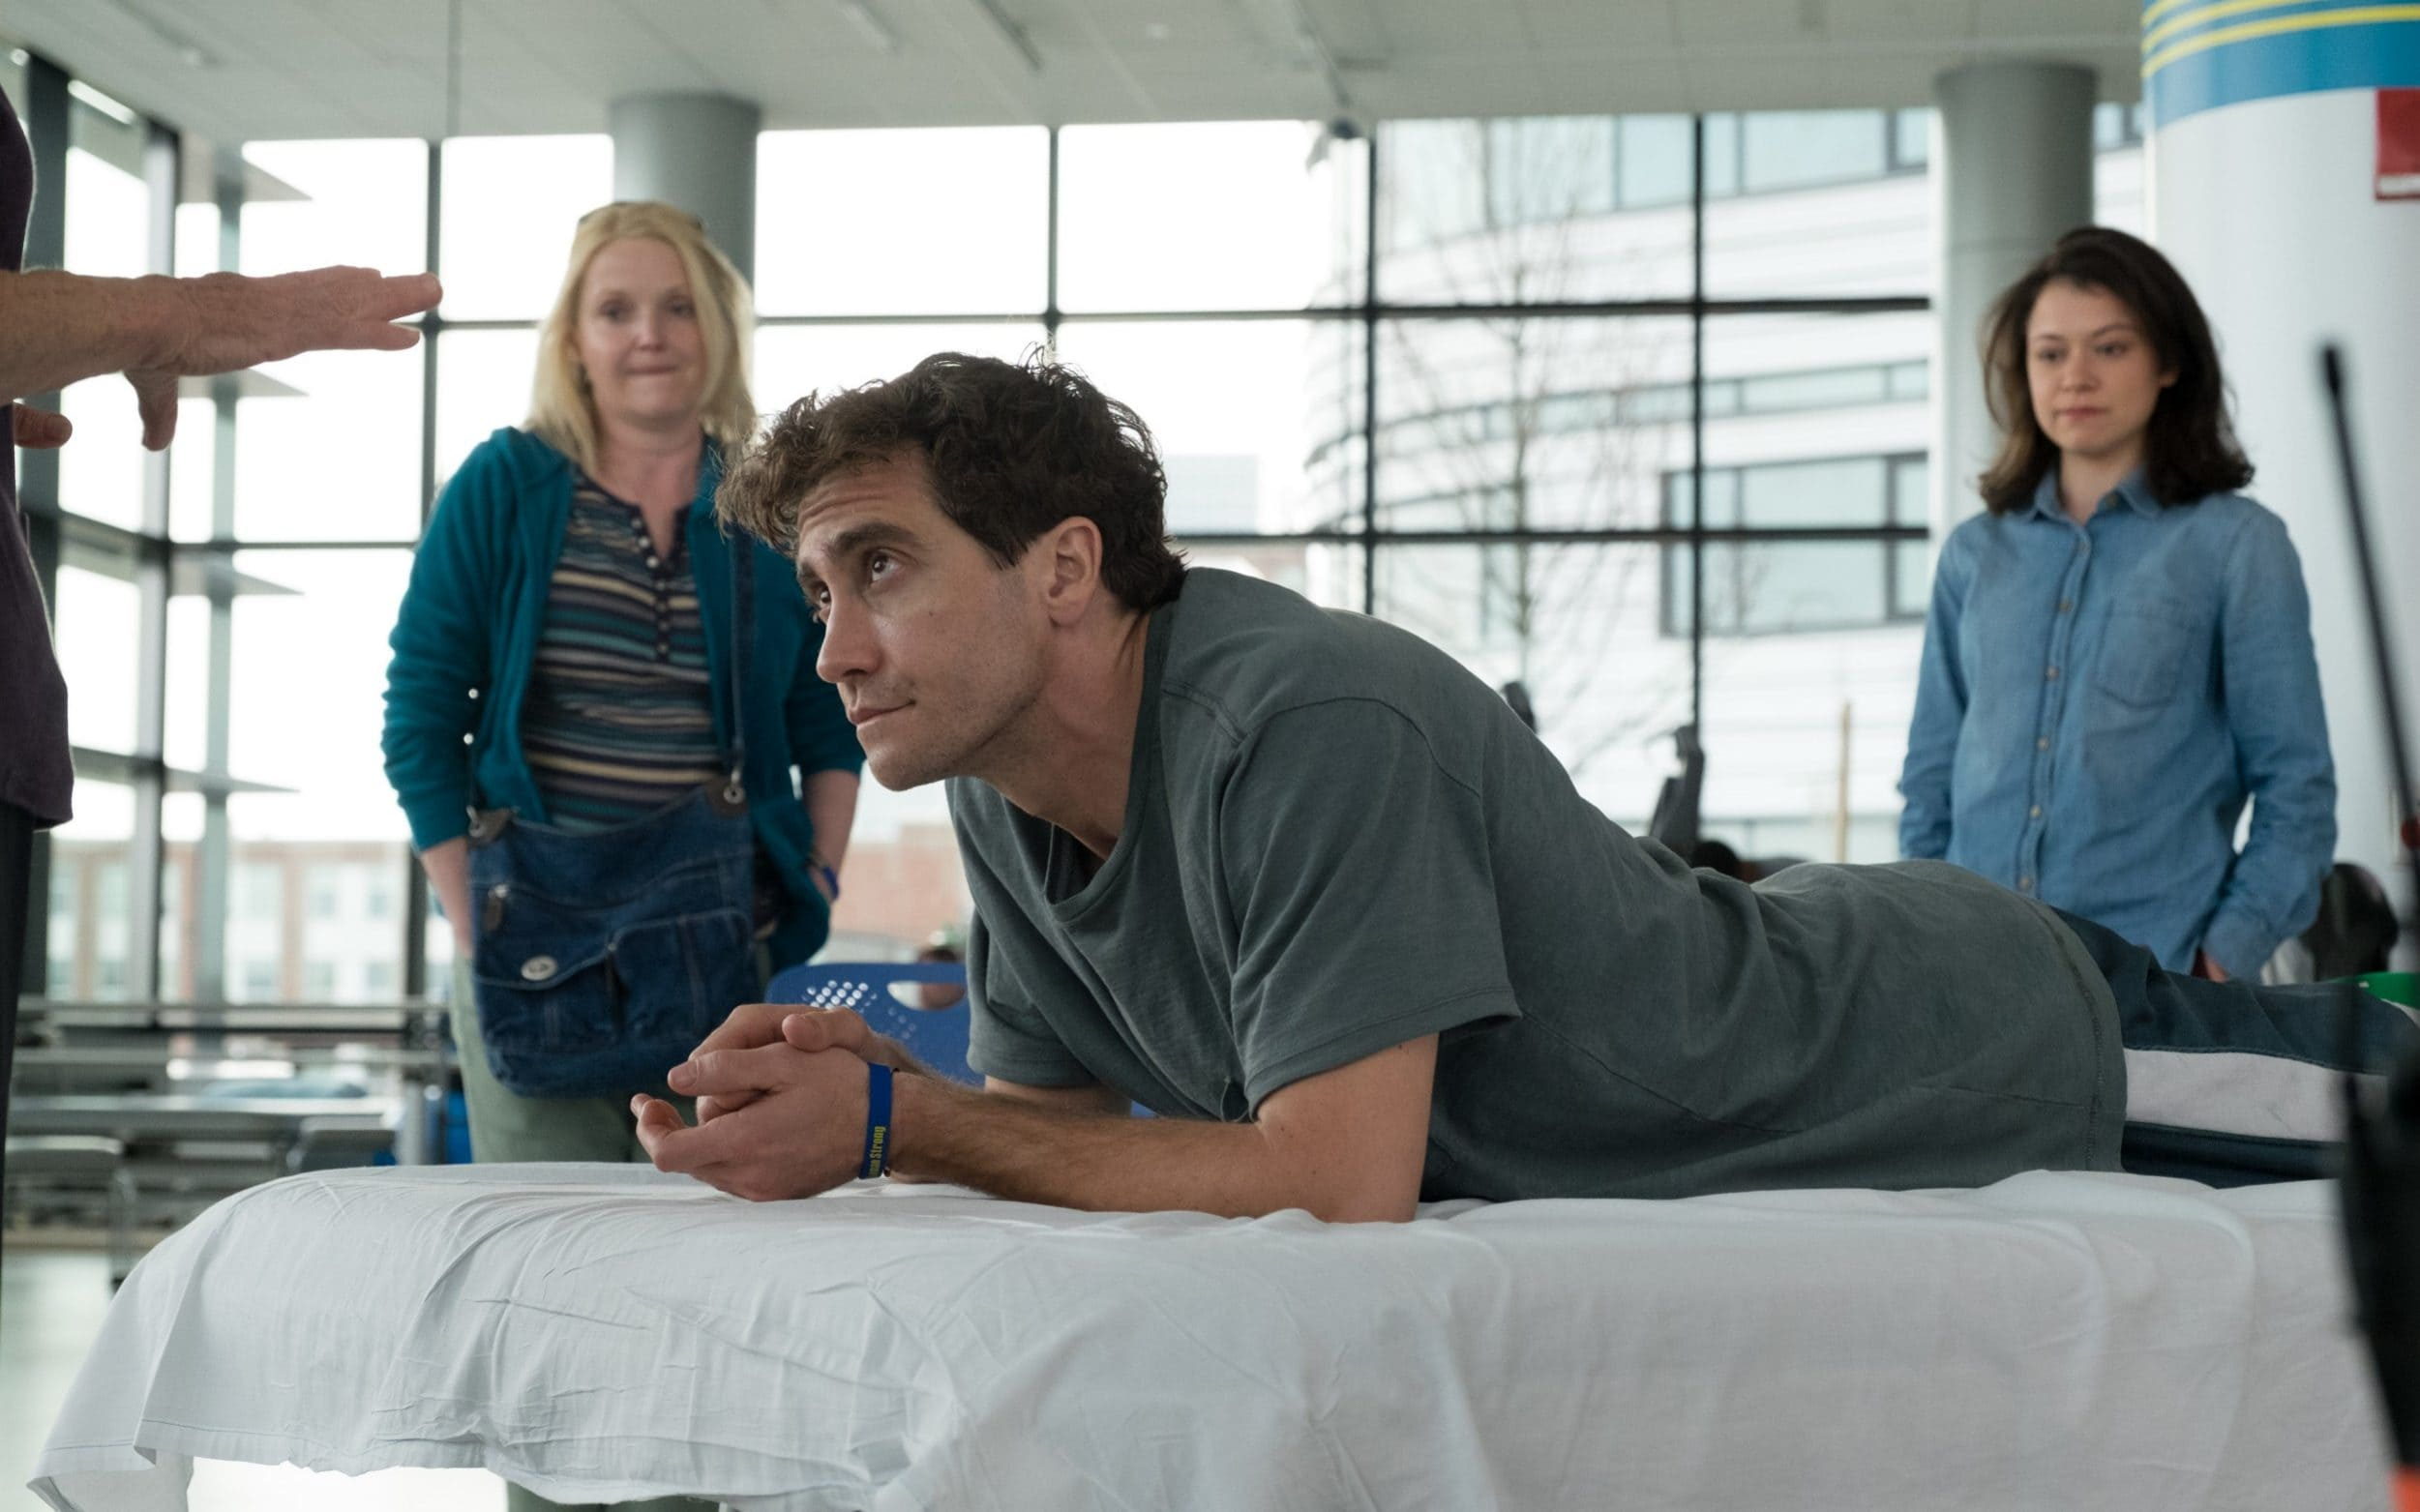 Jake Gyllenhaal in his latest film, Stronger, where he plays Jeff Bauman who lost his legs in the Boston Marathon bombing